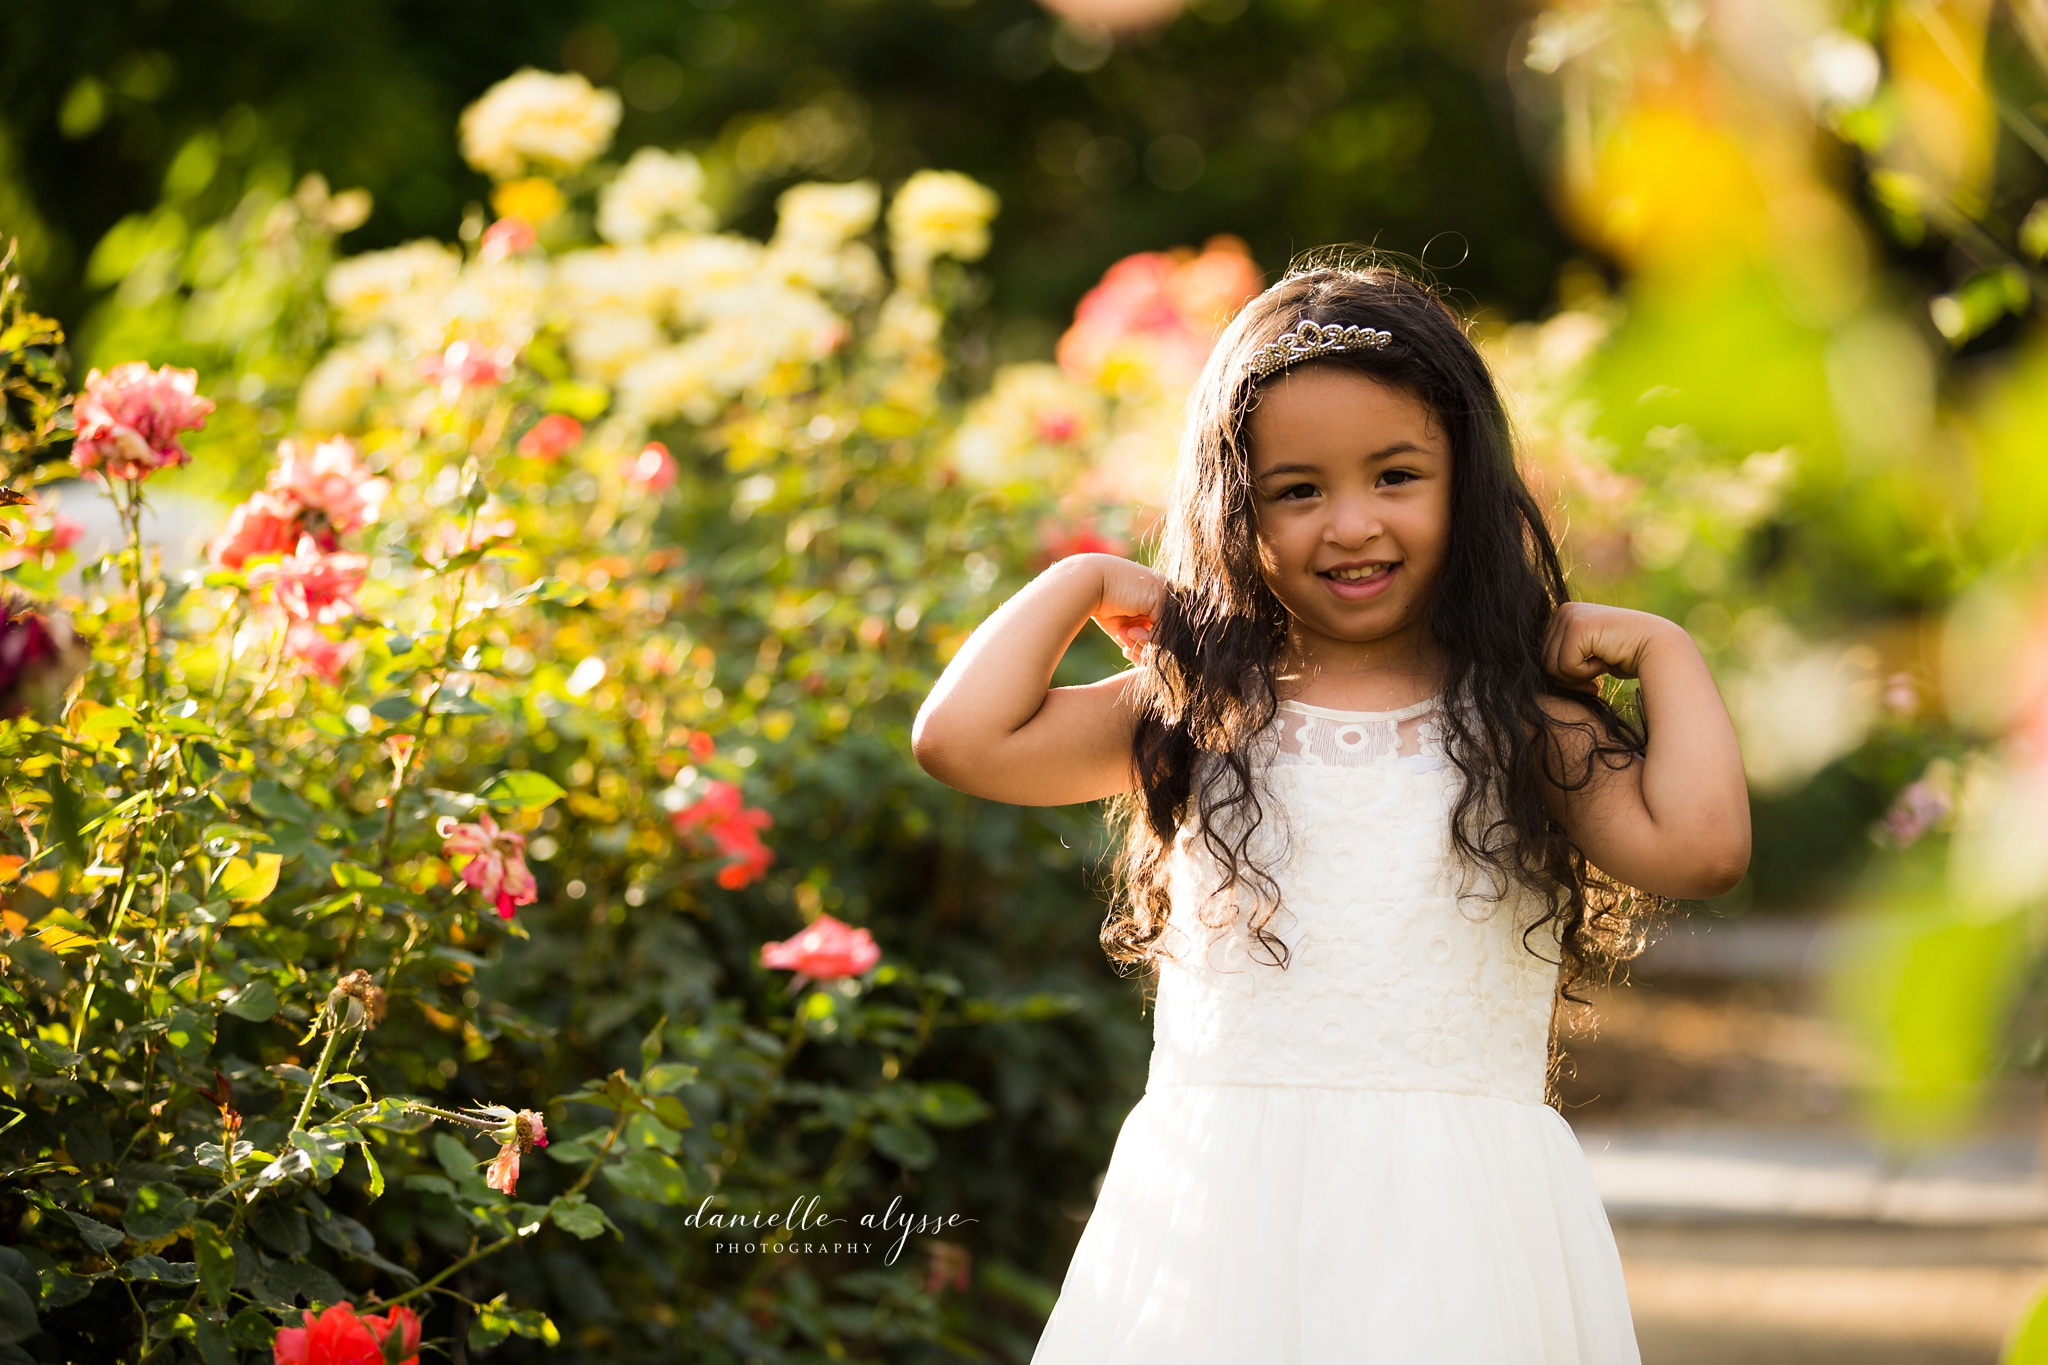 180604_family_portrait_eresvey_state_capitol_park_california_danielle_alysse_photography_blog_25_WEB.jpg